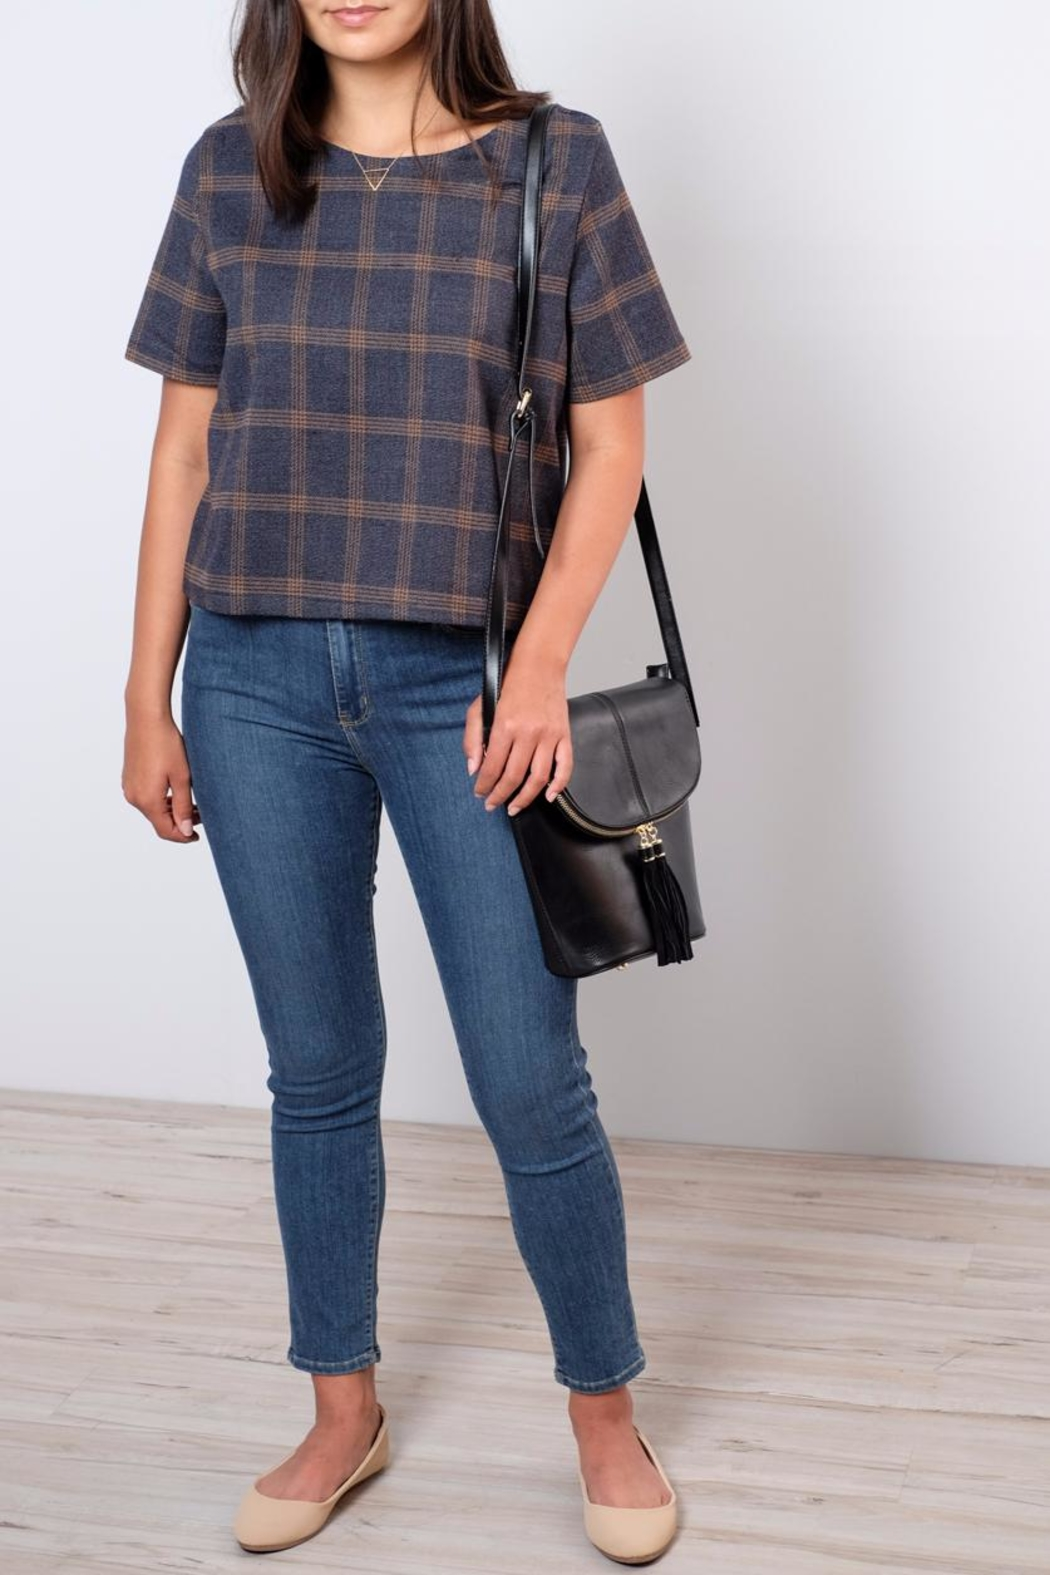 Everly Plaid Woven Top - Front Cropped Image